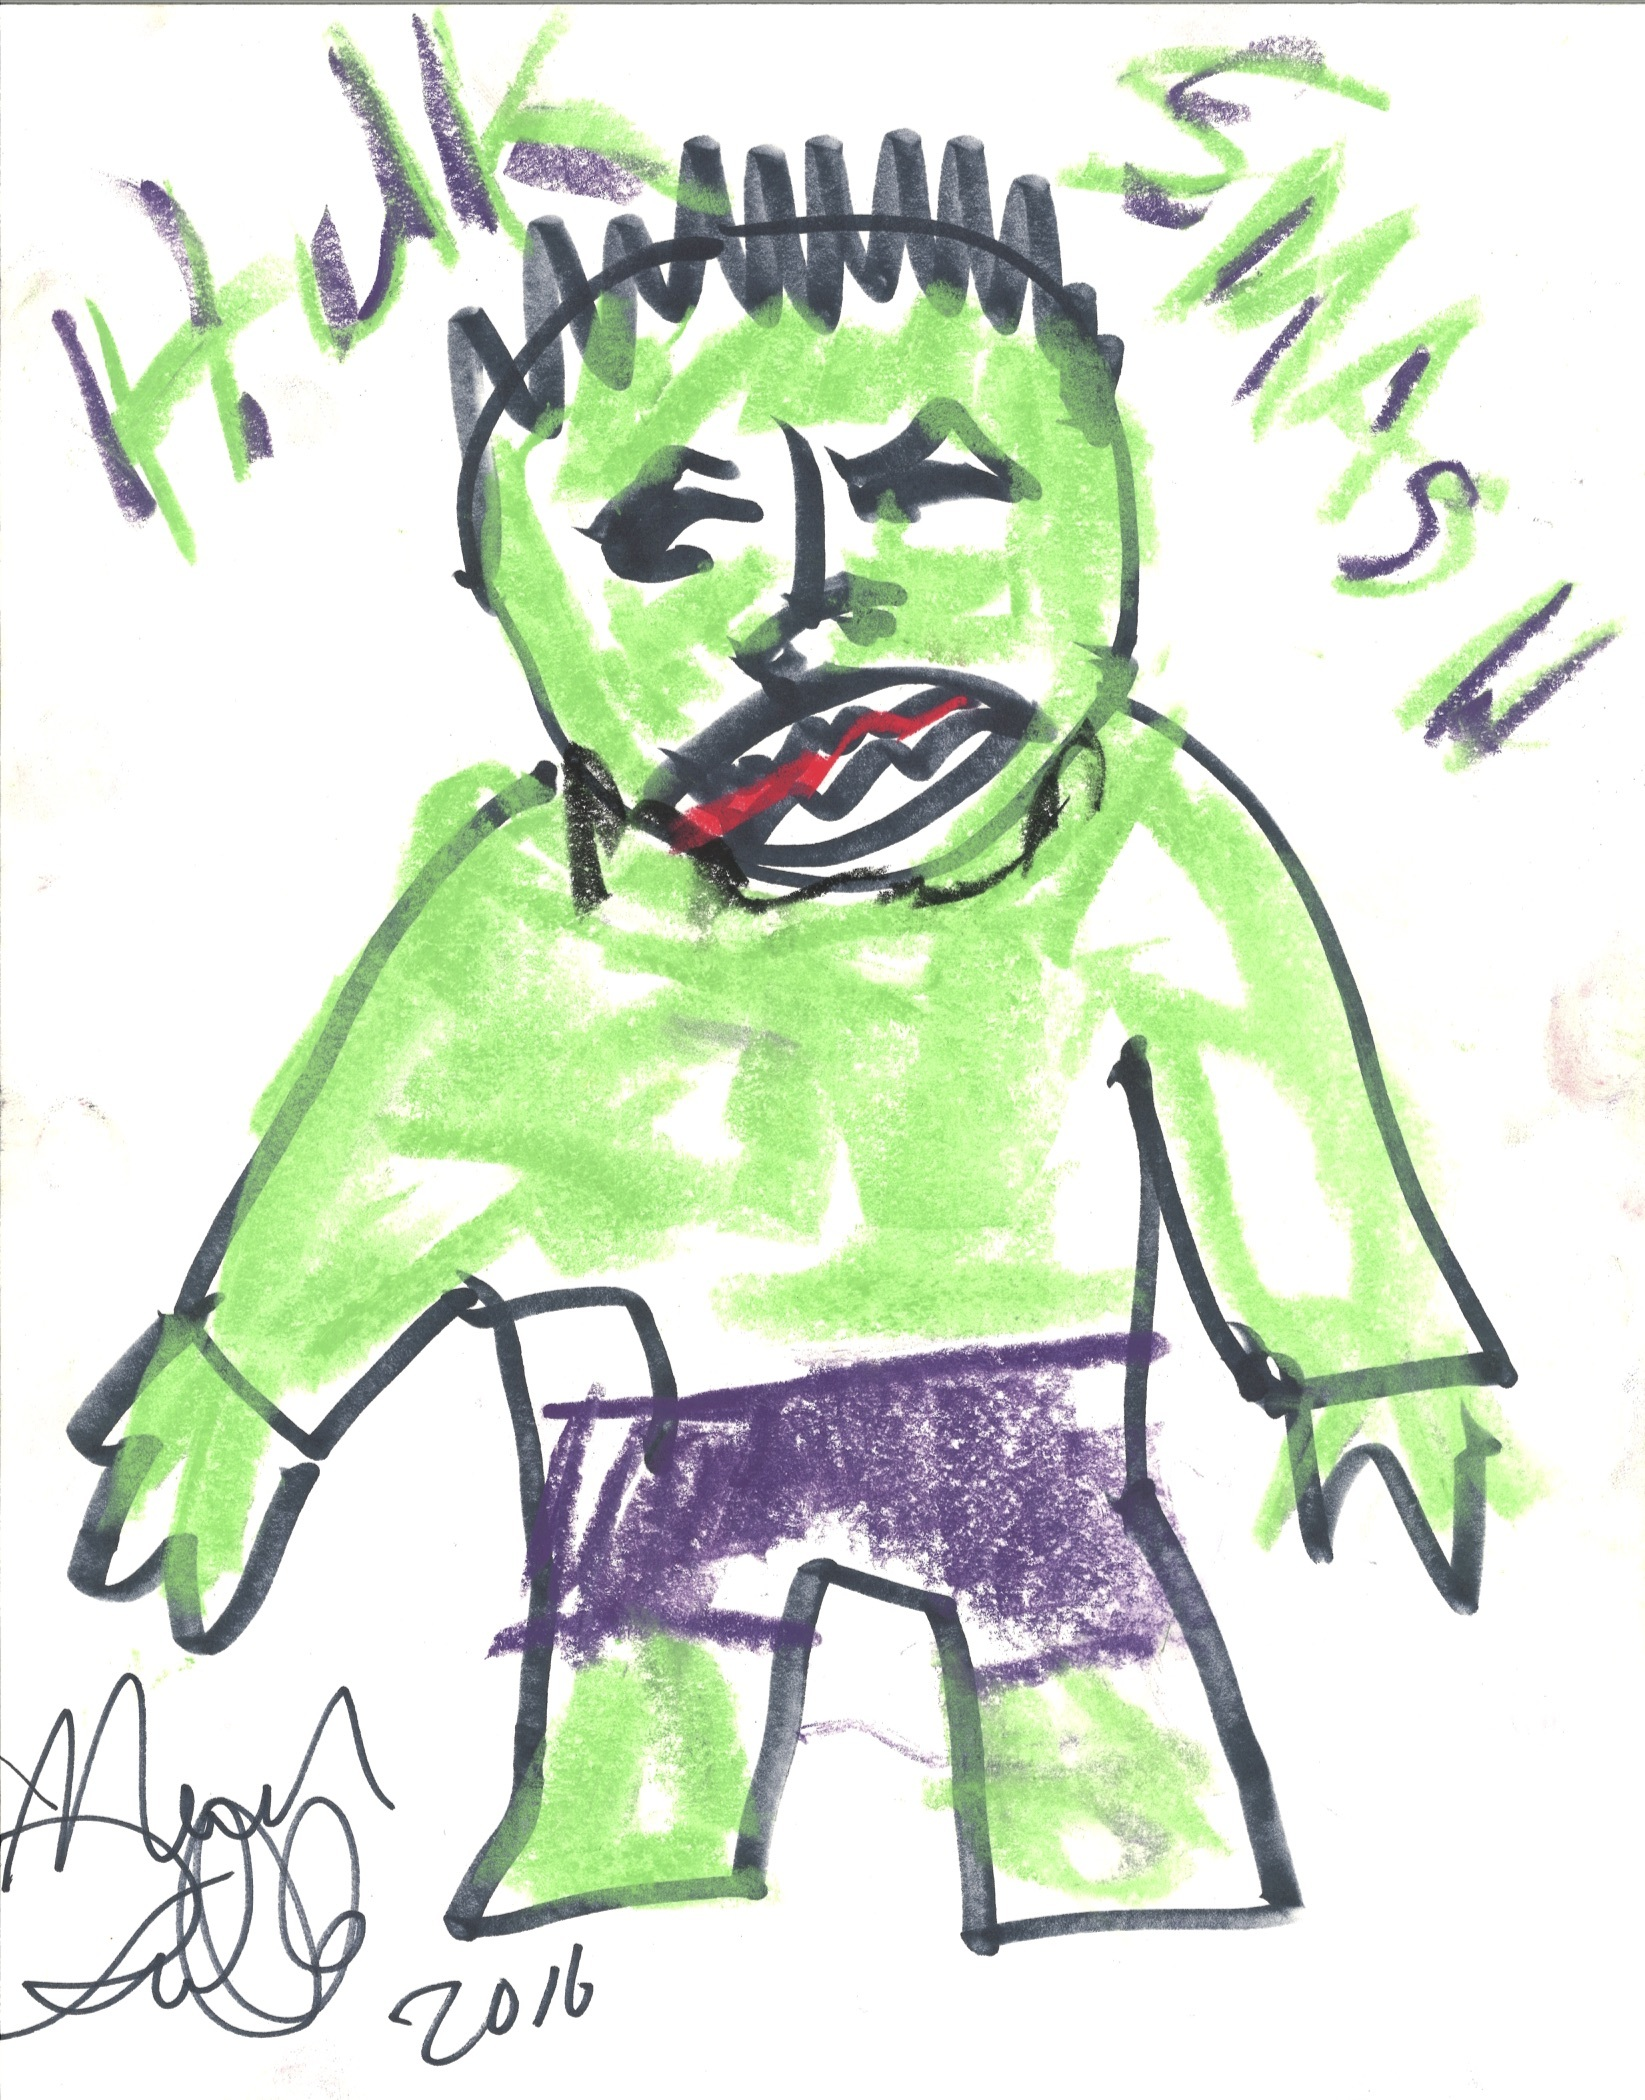 Charitybuzz Drawing Of The Hulk By Mark Ruffalo Lot 1526716